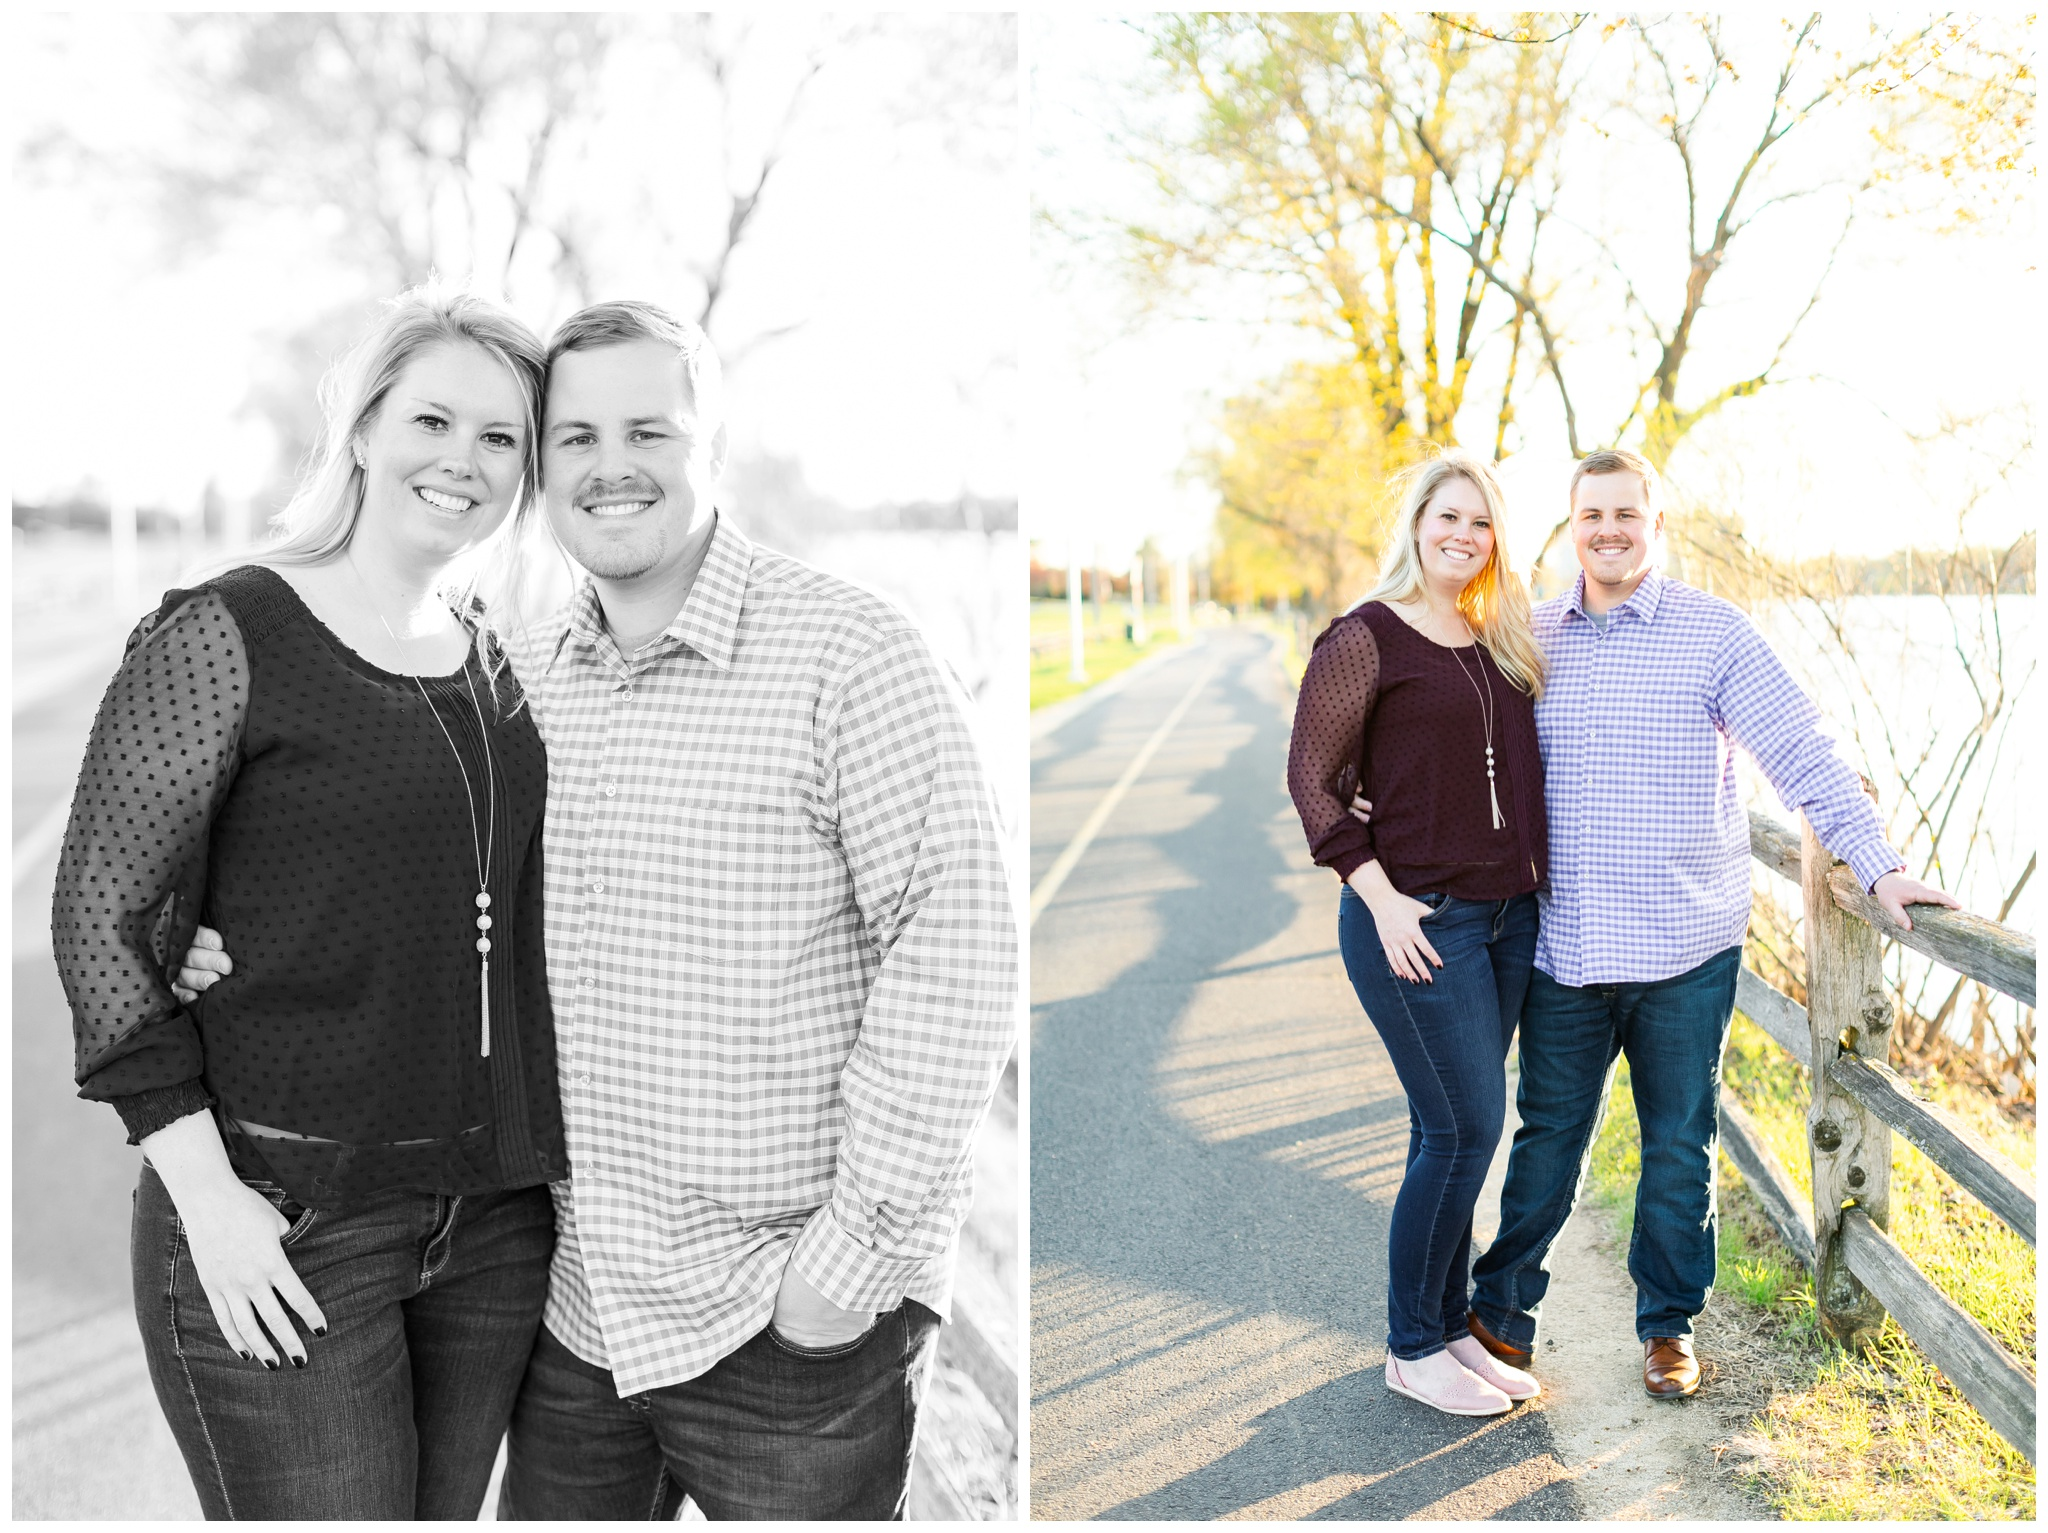 nicholas_conservatory_engagement_session_rockford_illinois_caynay_photo_2996.jpg